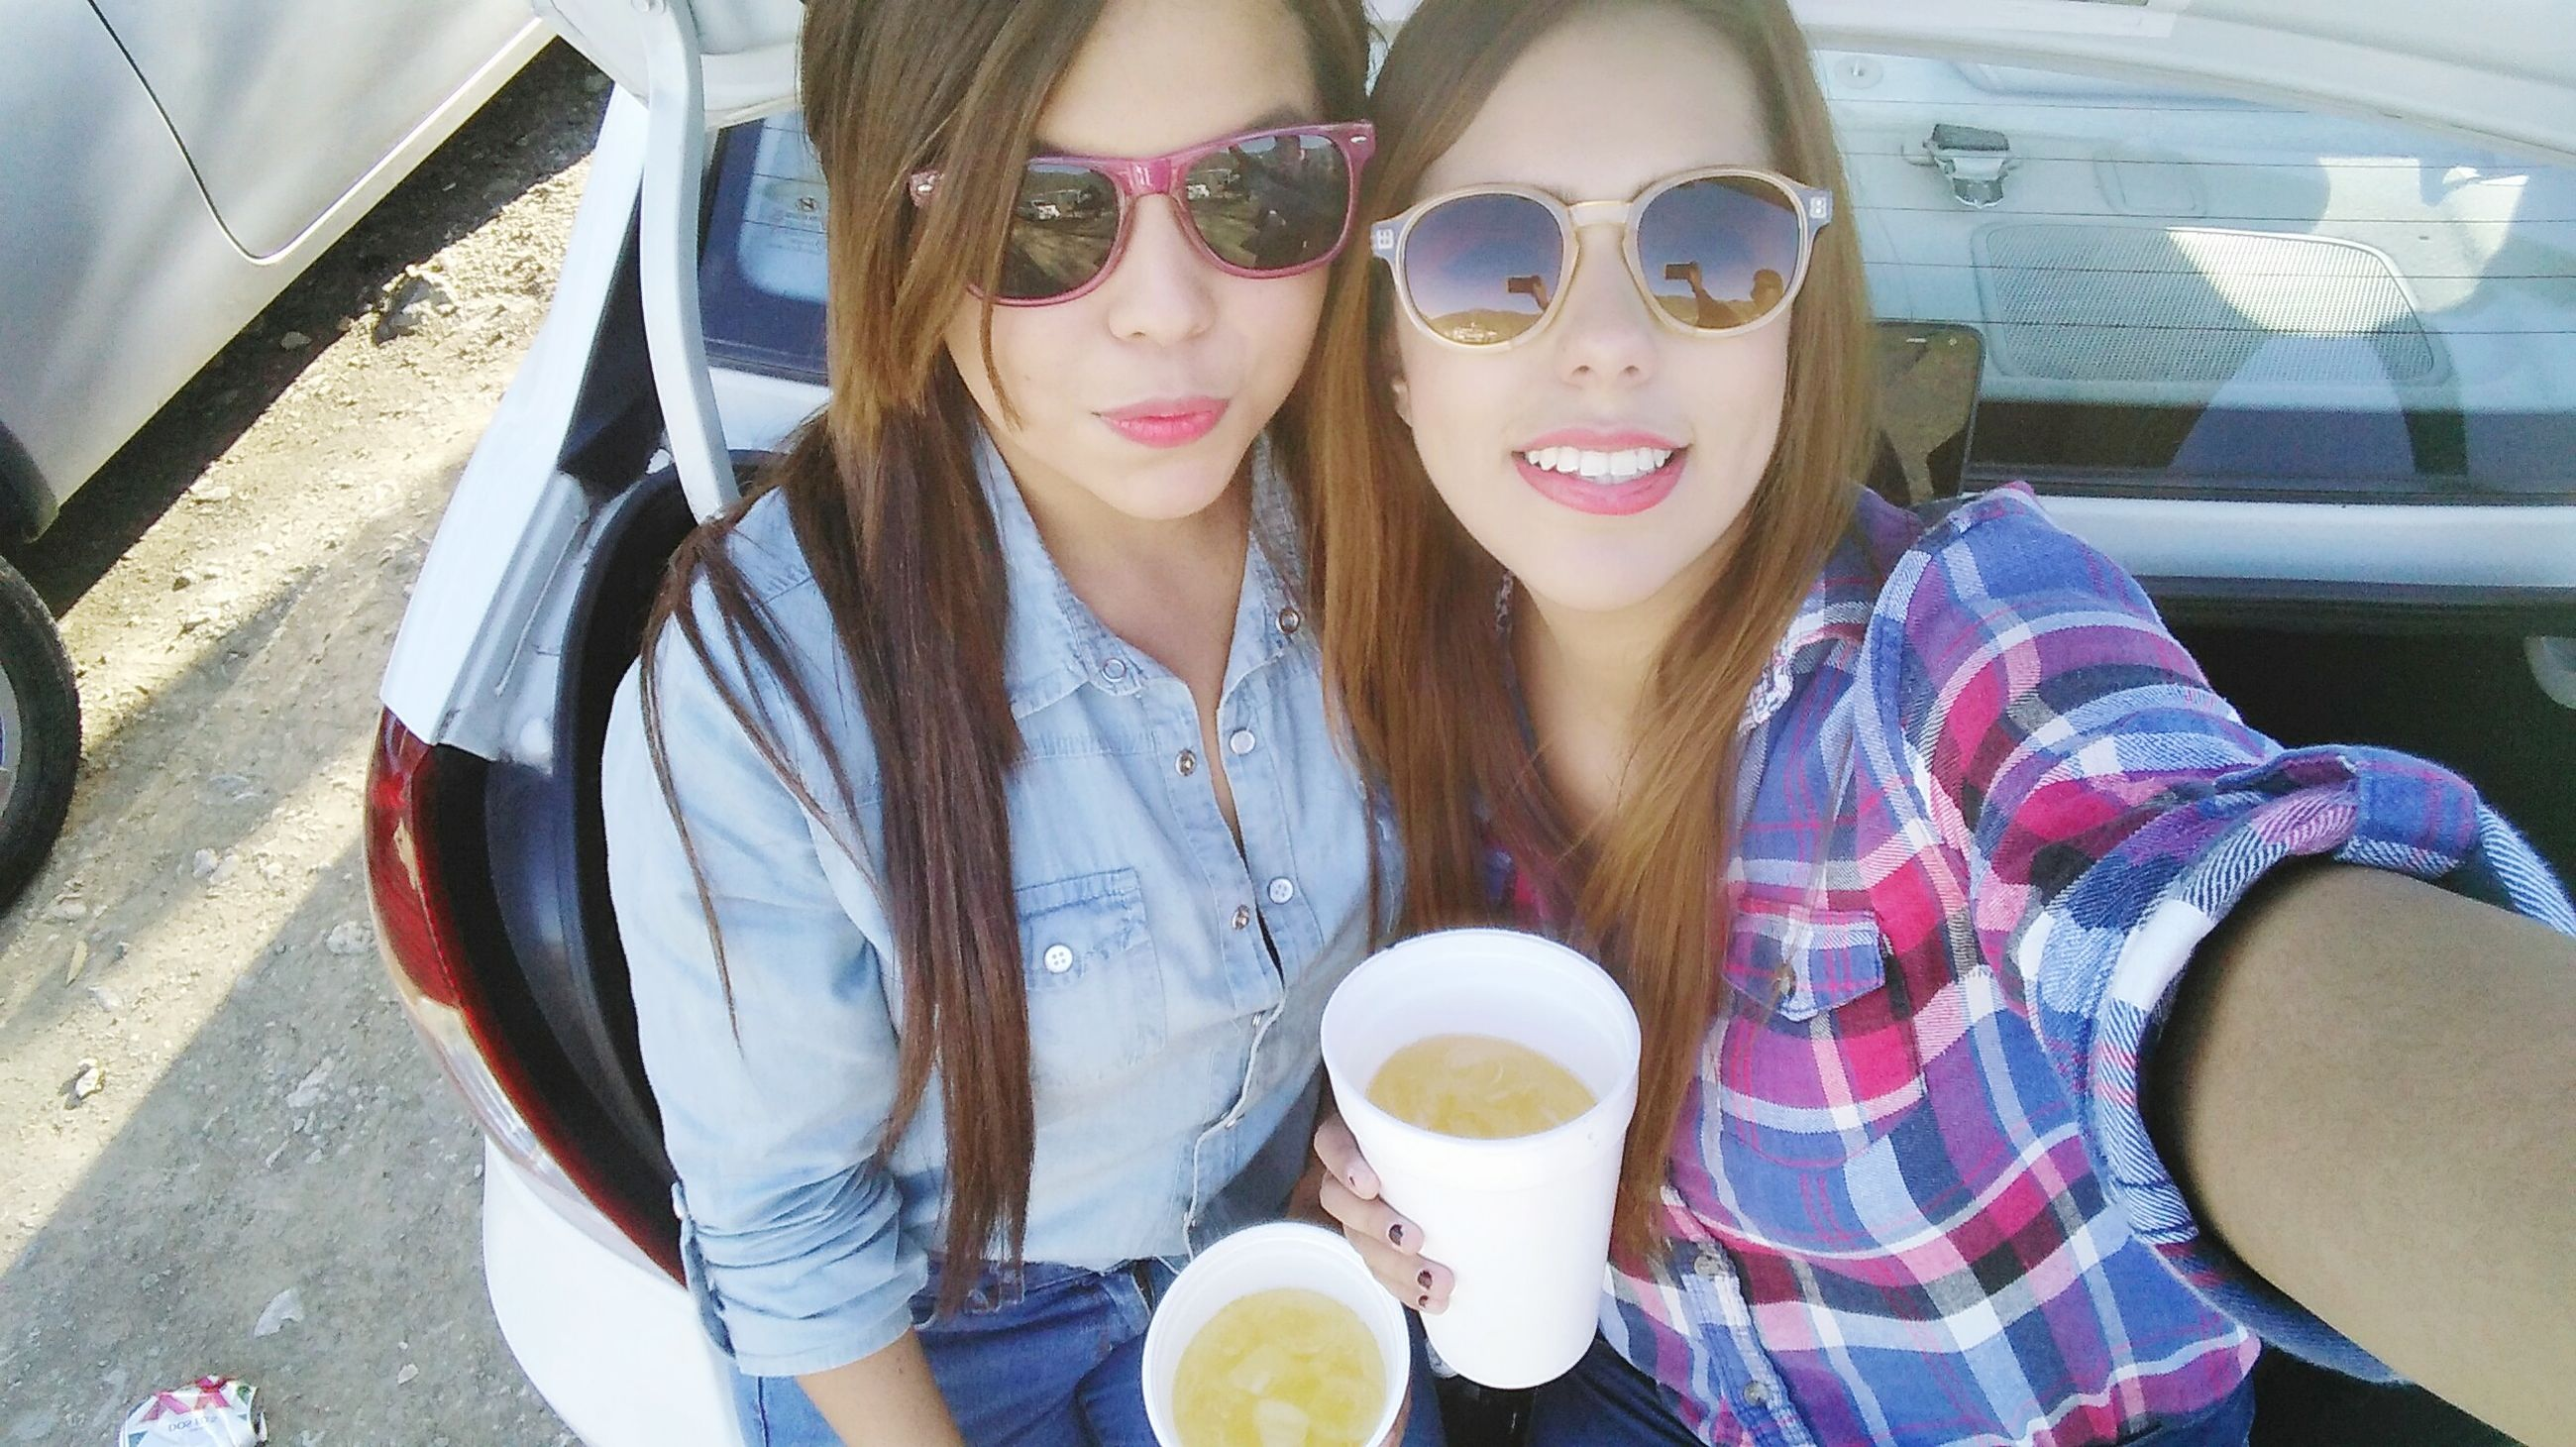 lifestyles, casual clothing, leisure activity, person, looking at camera, sunglasses, portrait, young adult, front view, drink, food and drink, sitting, smiling, standing, refreshment, young women, happiness